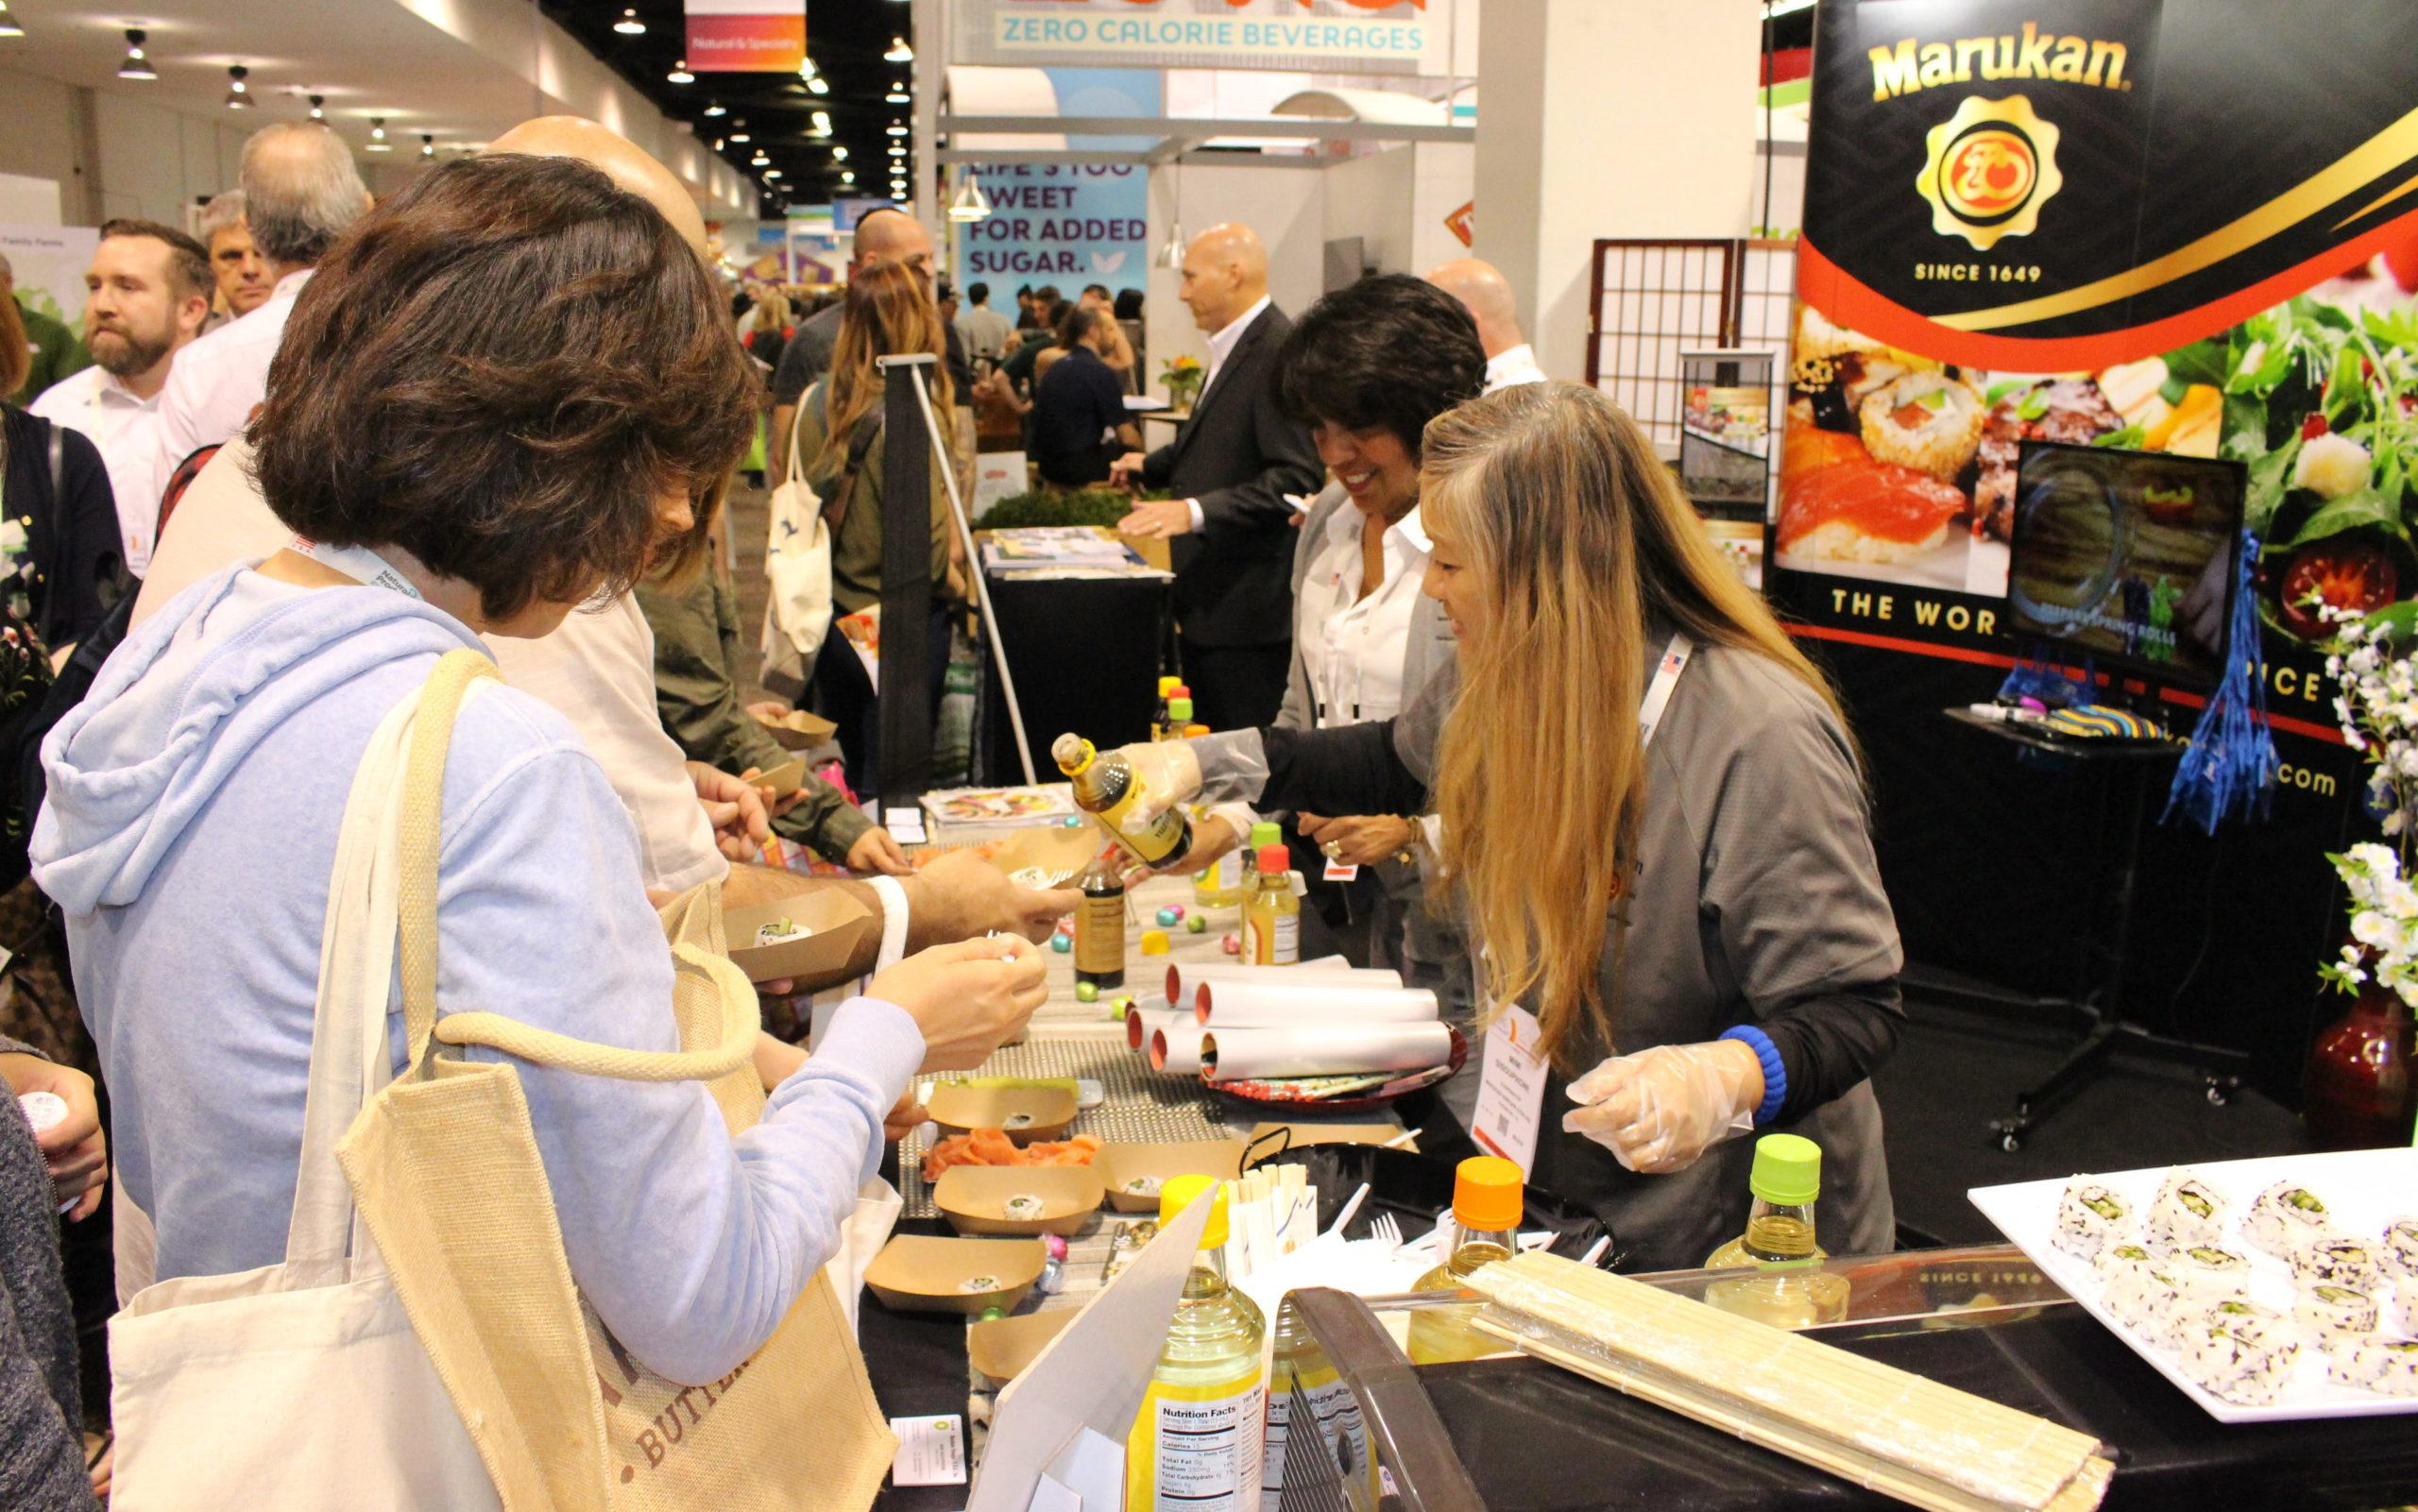 Marukan Dishes Out Delicious Samples at the Natural Products Expo West